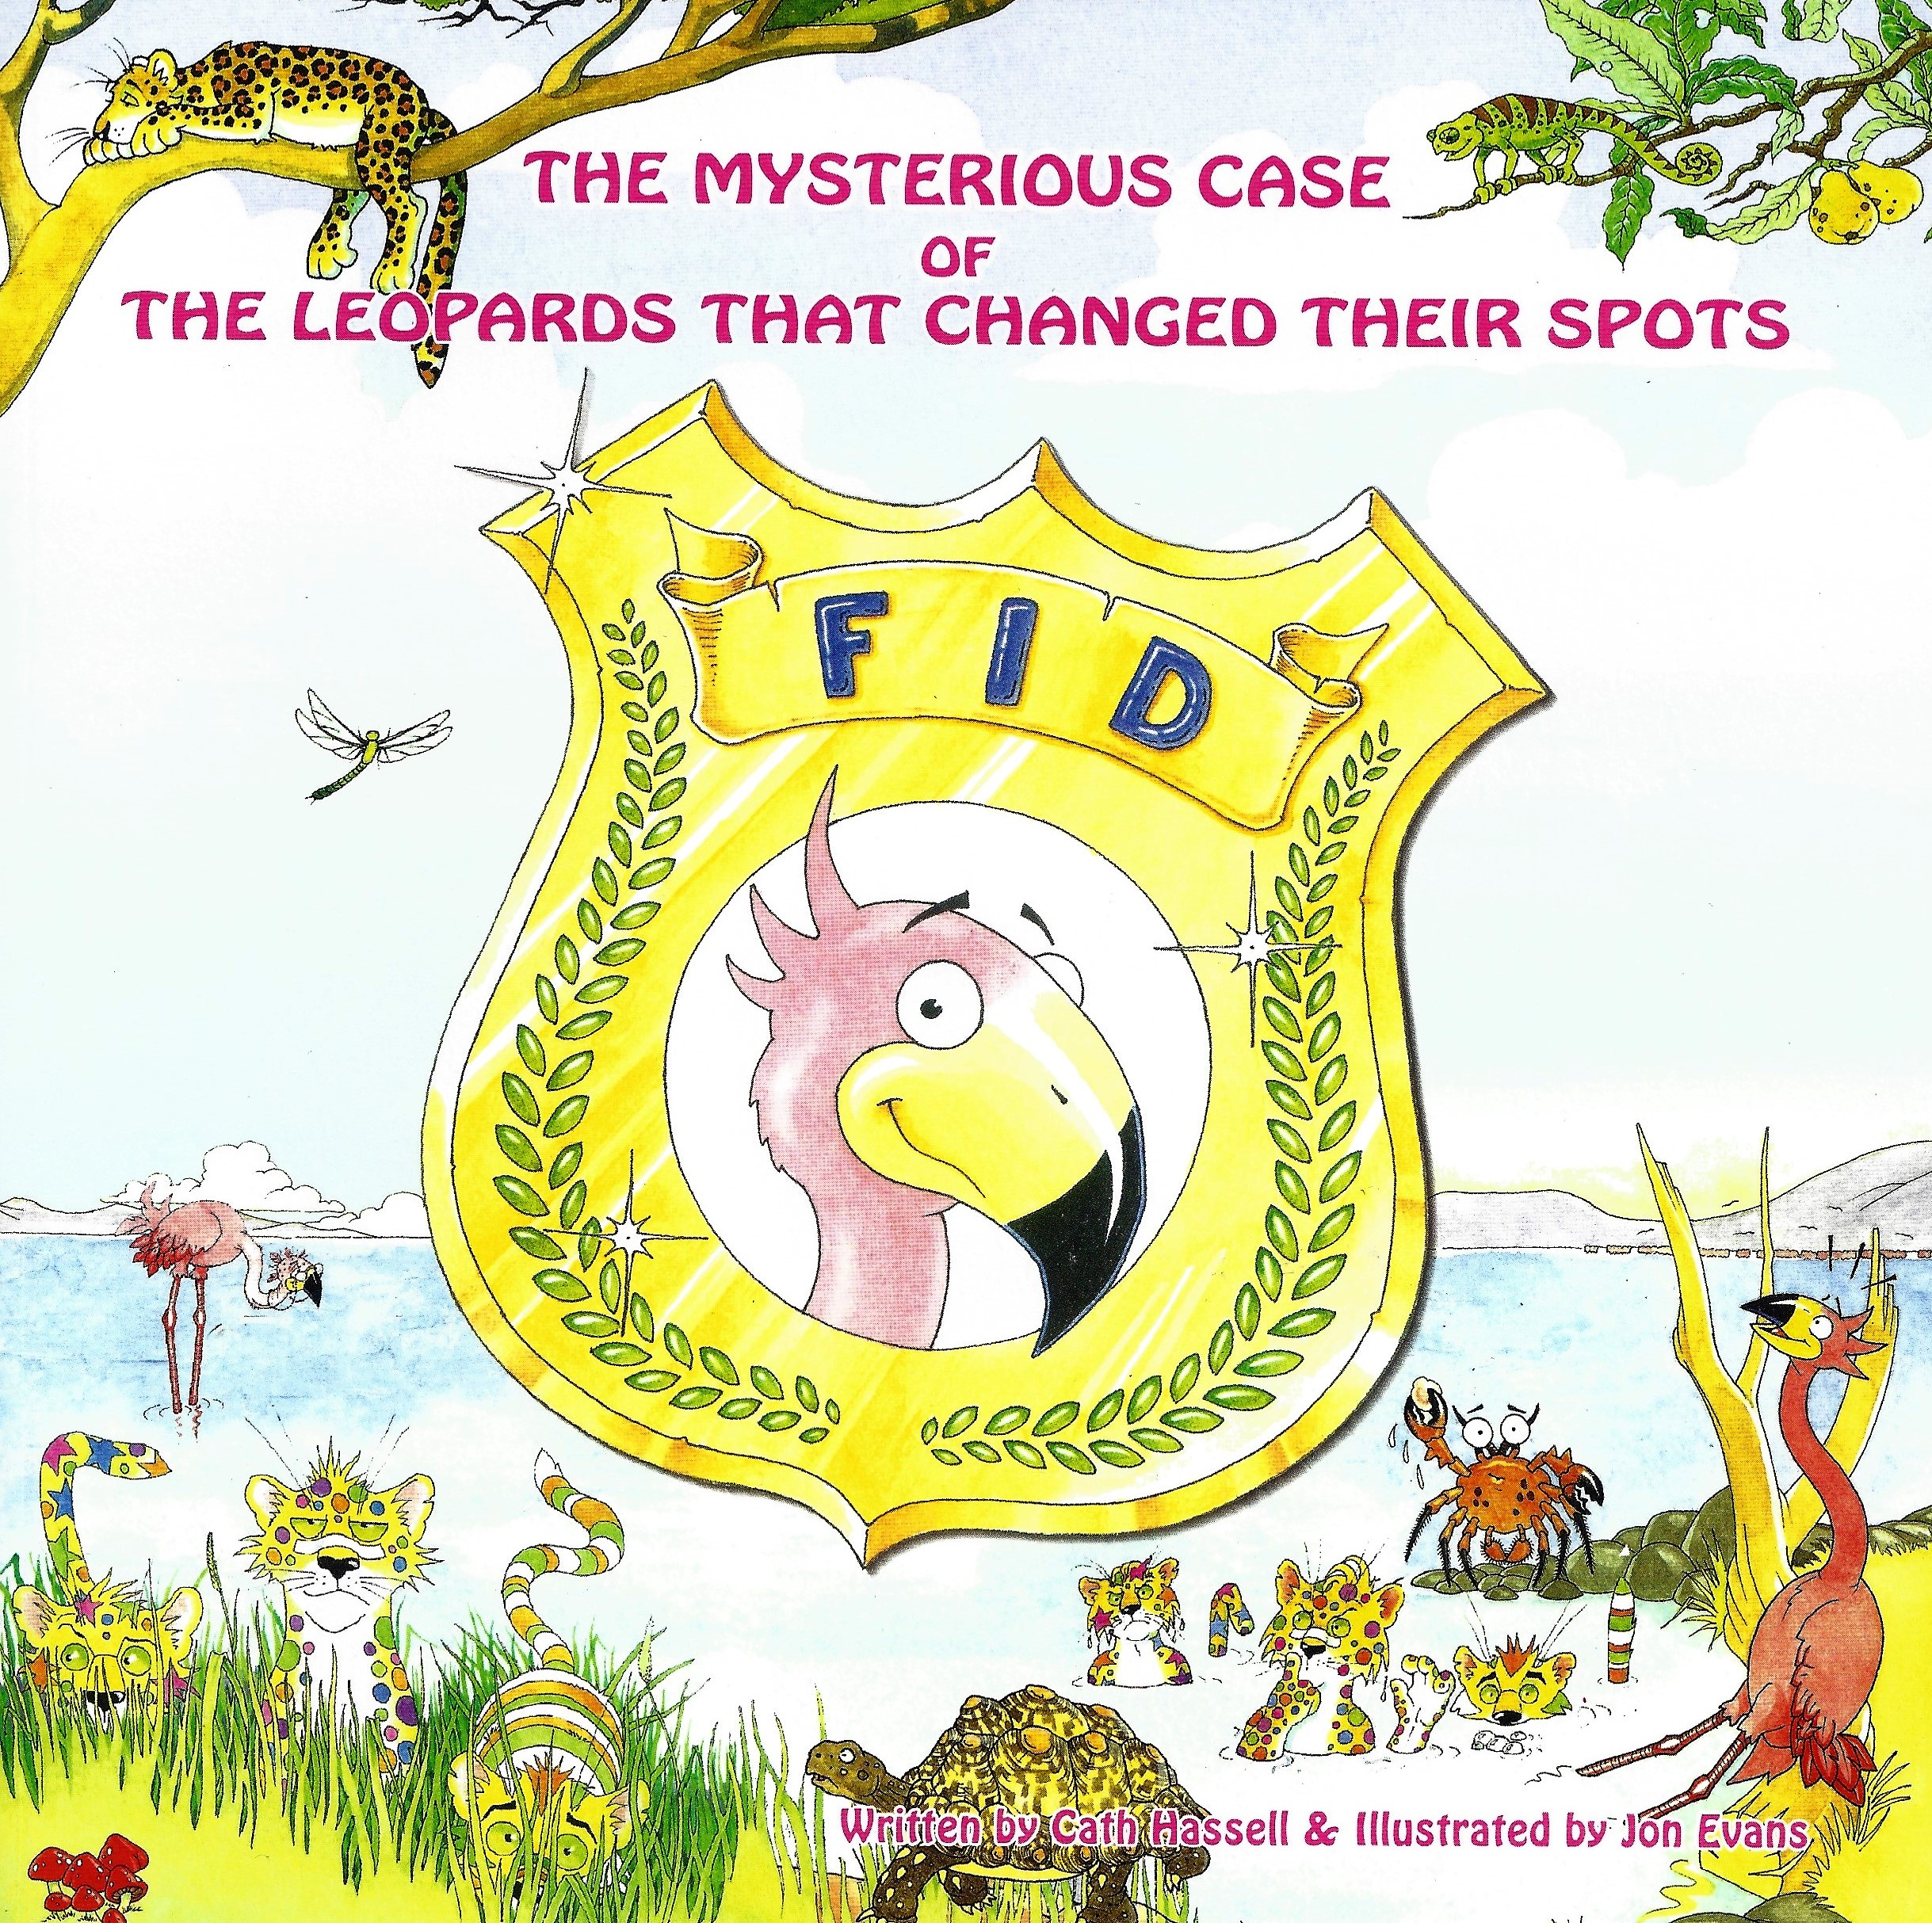 Buy 'The mysterious case of the leopards that changed their spots'